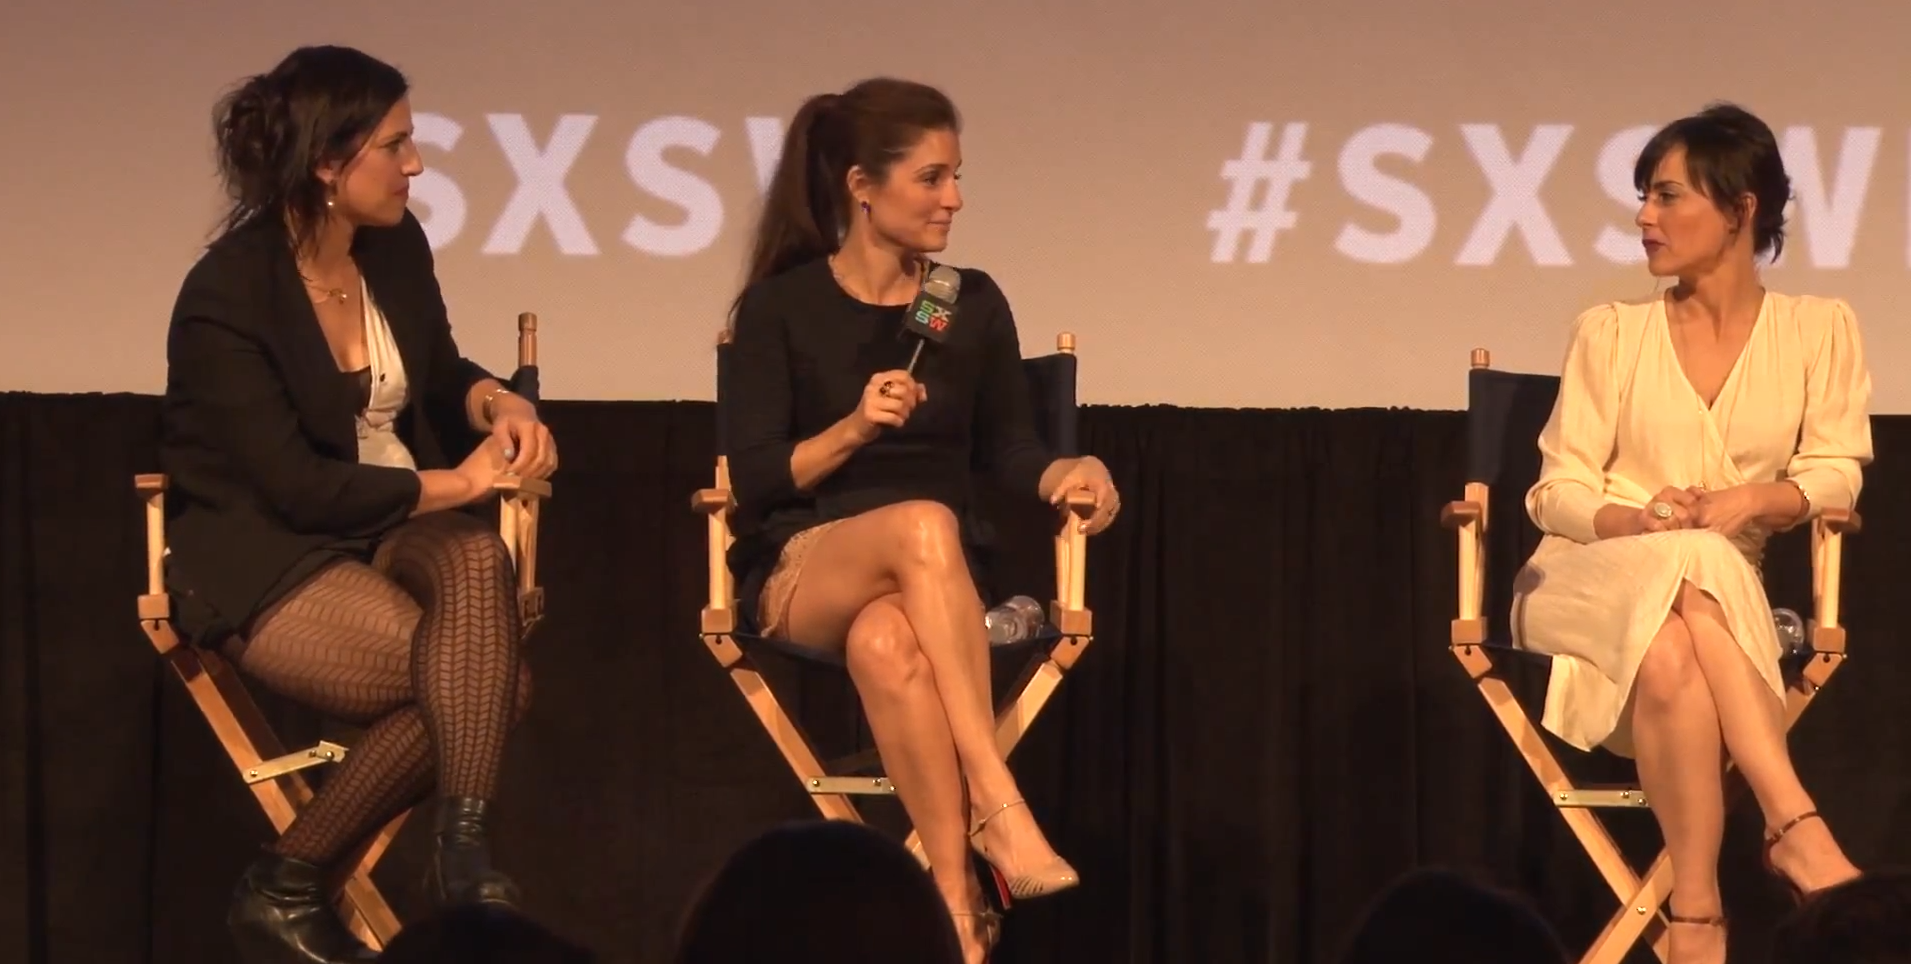 UnREAL Q&A, SXSW 2015. Image by: SXSW / YouTube